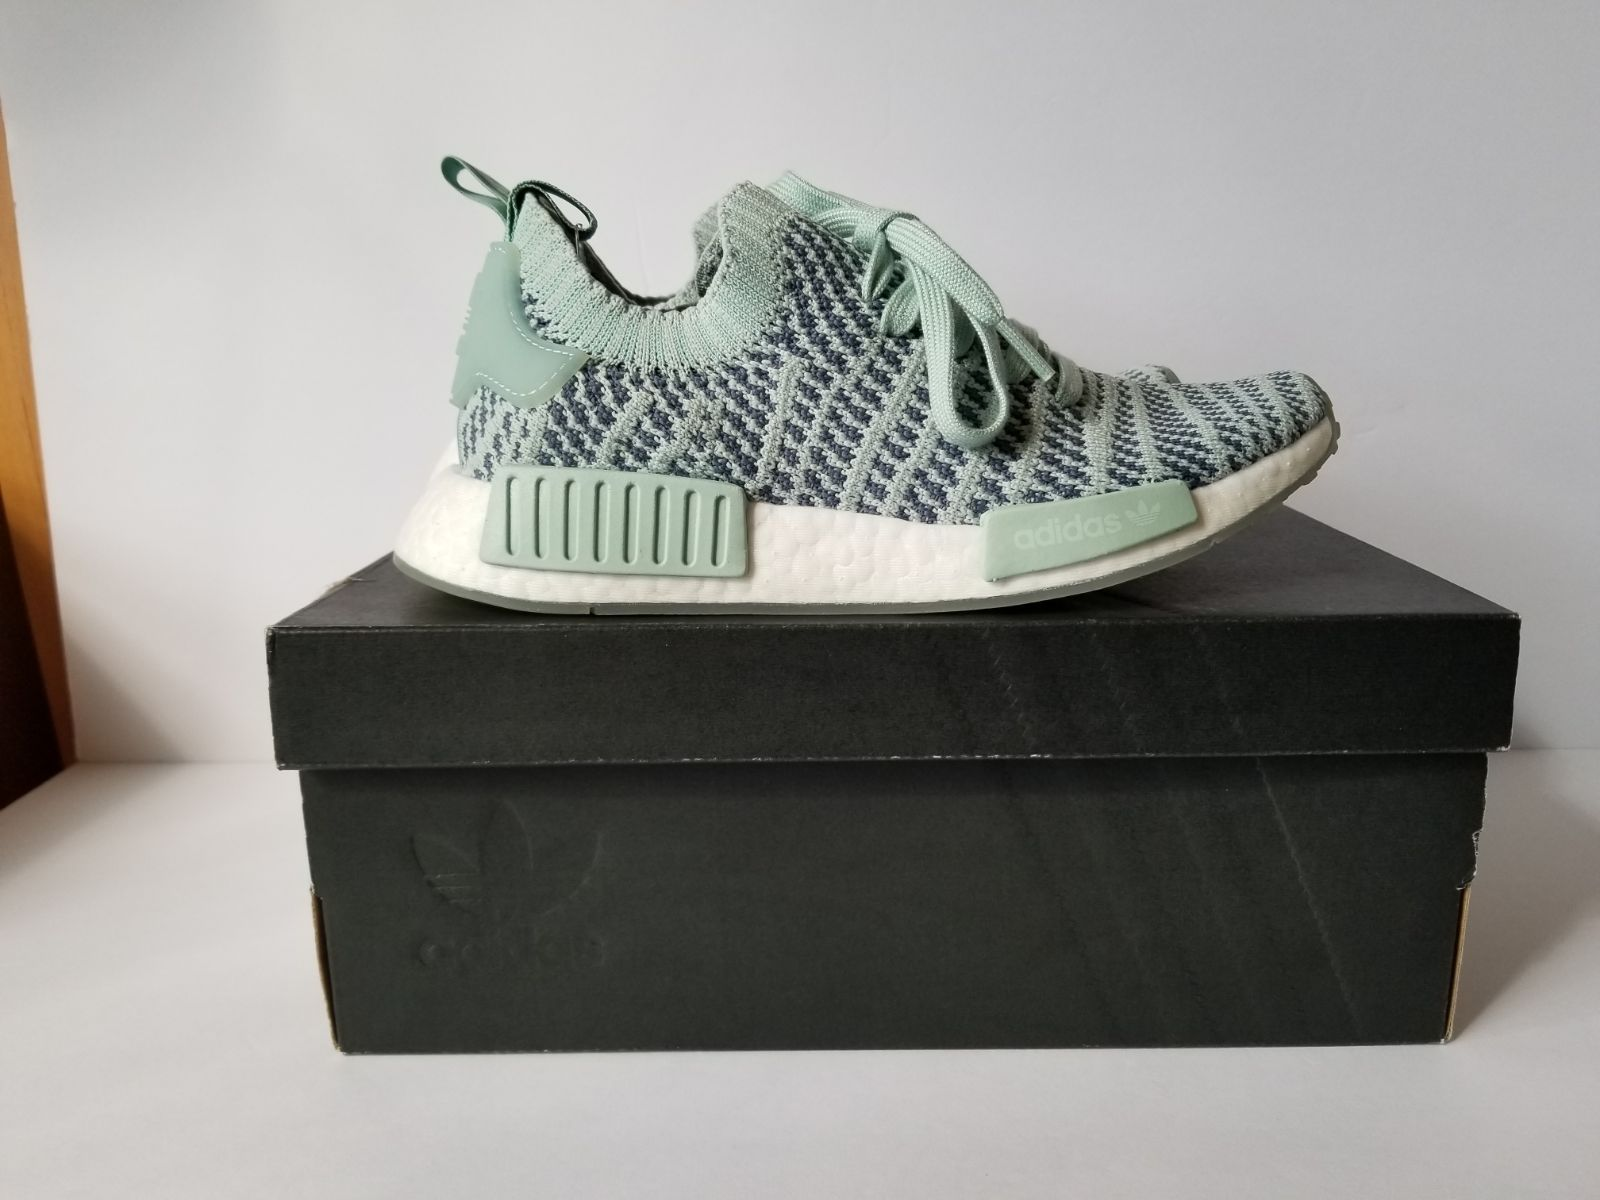 New Adidas NMD size 7 in womens